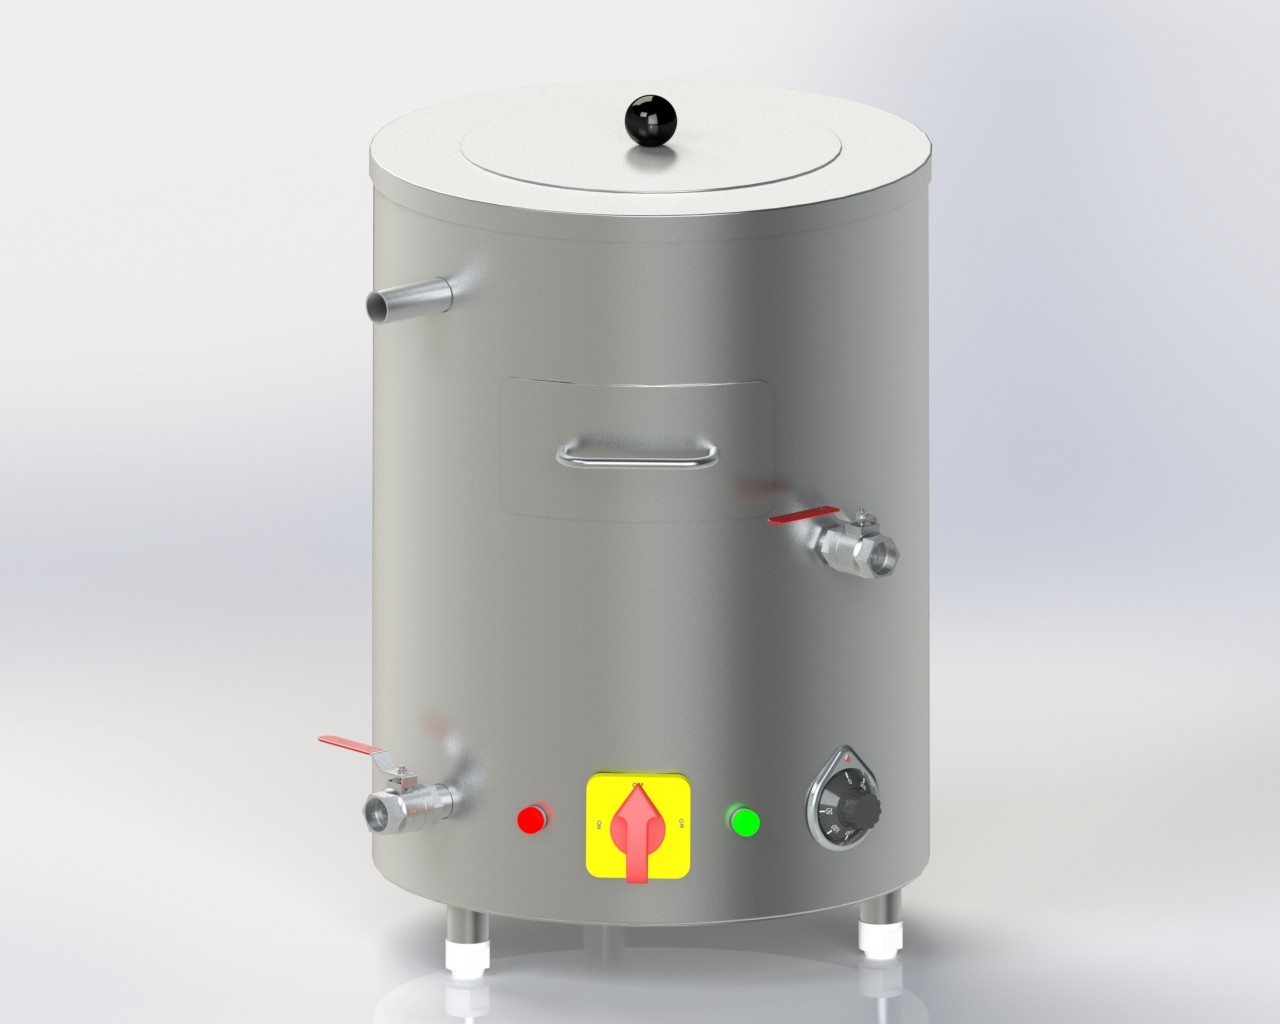 Water Boiler for boiling rice and potato